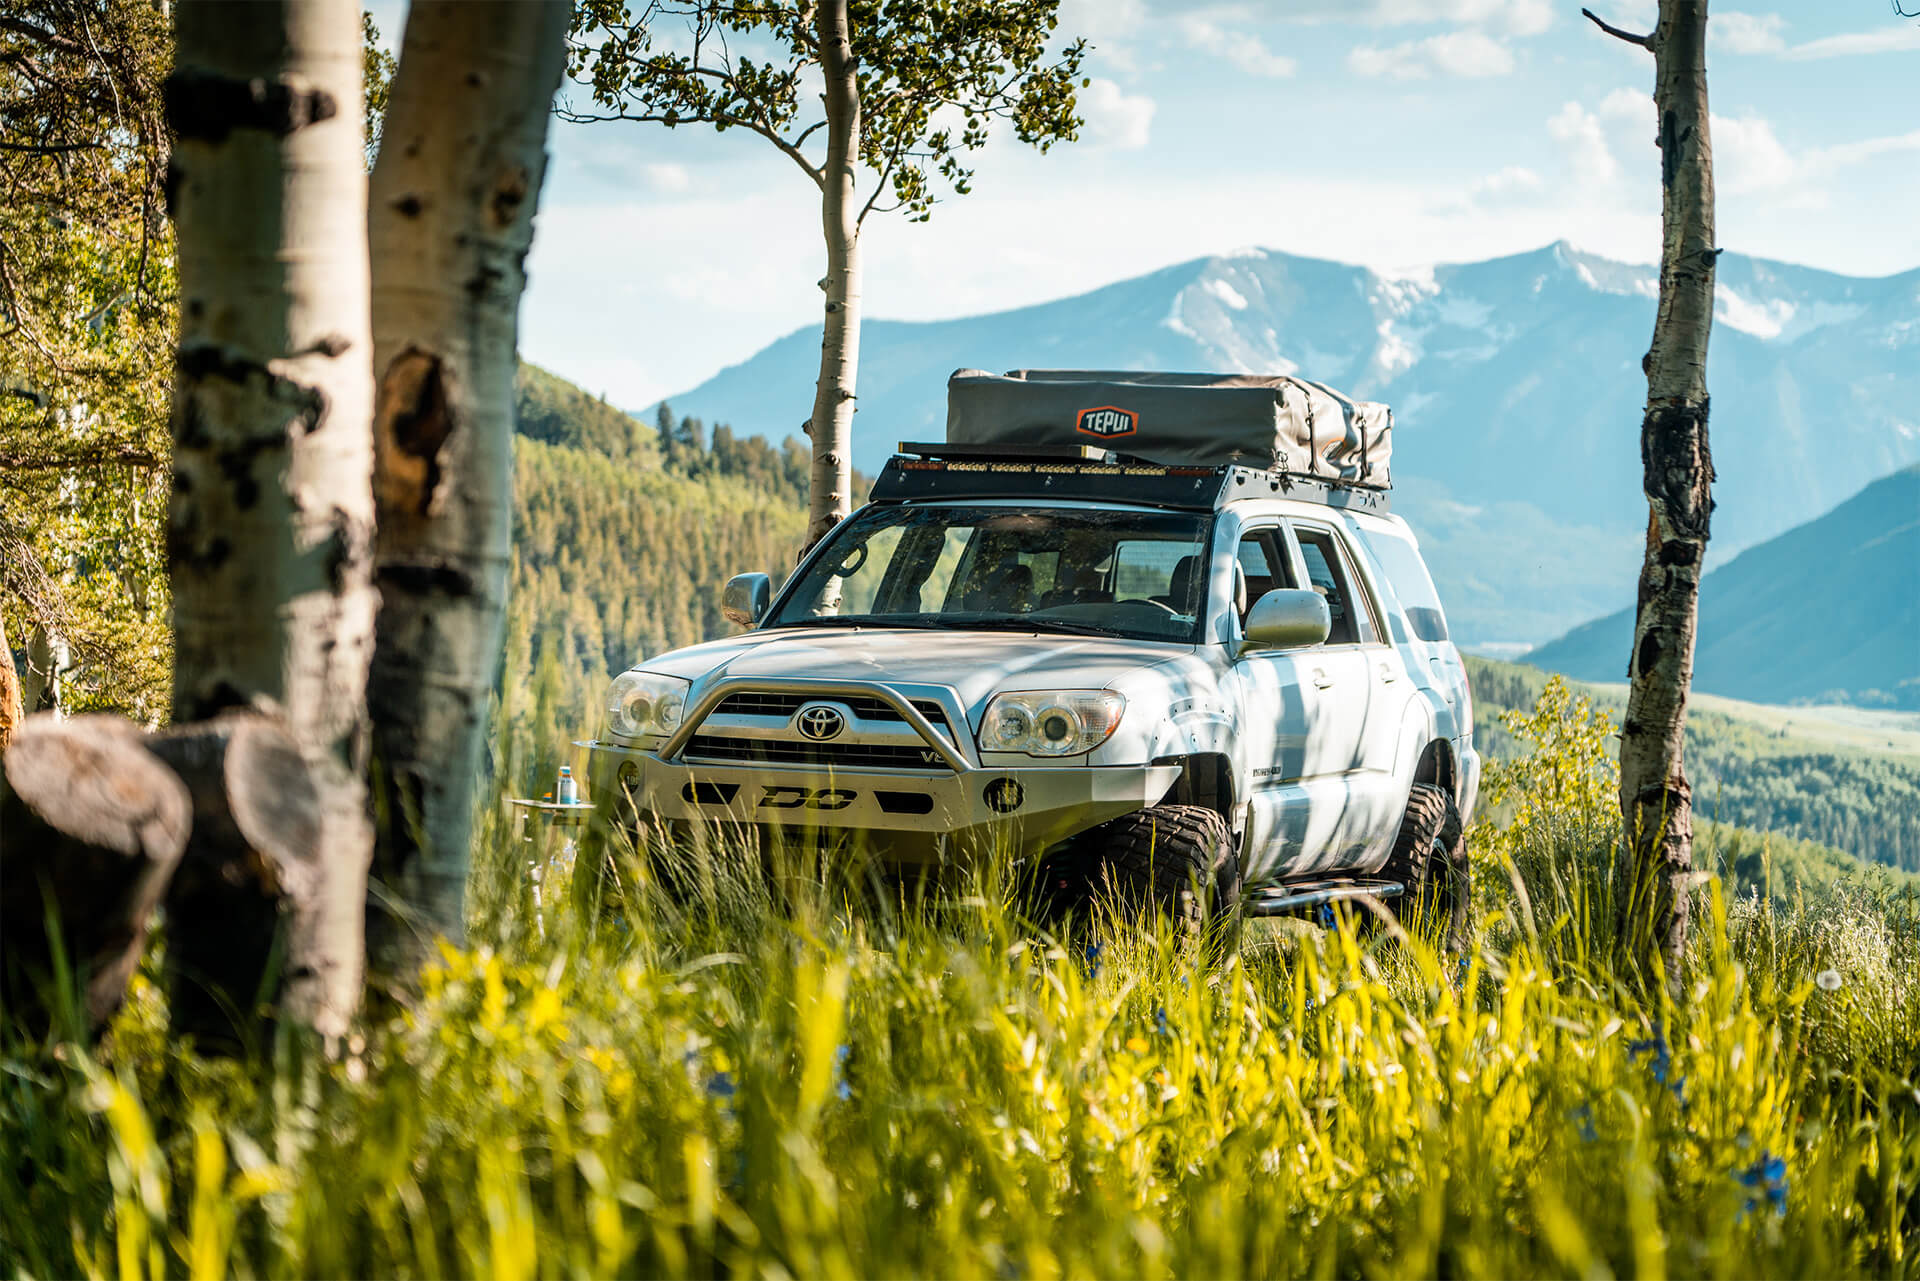 Lifted 2004 Toyota 4Runner on 35s – Built for Wheeling in the Mountains